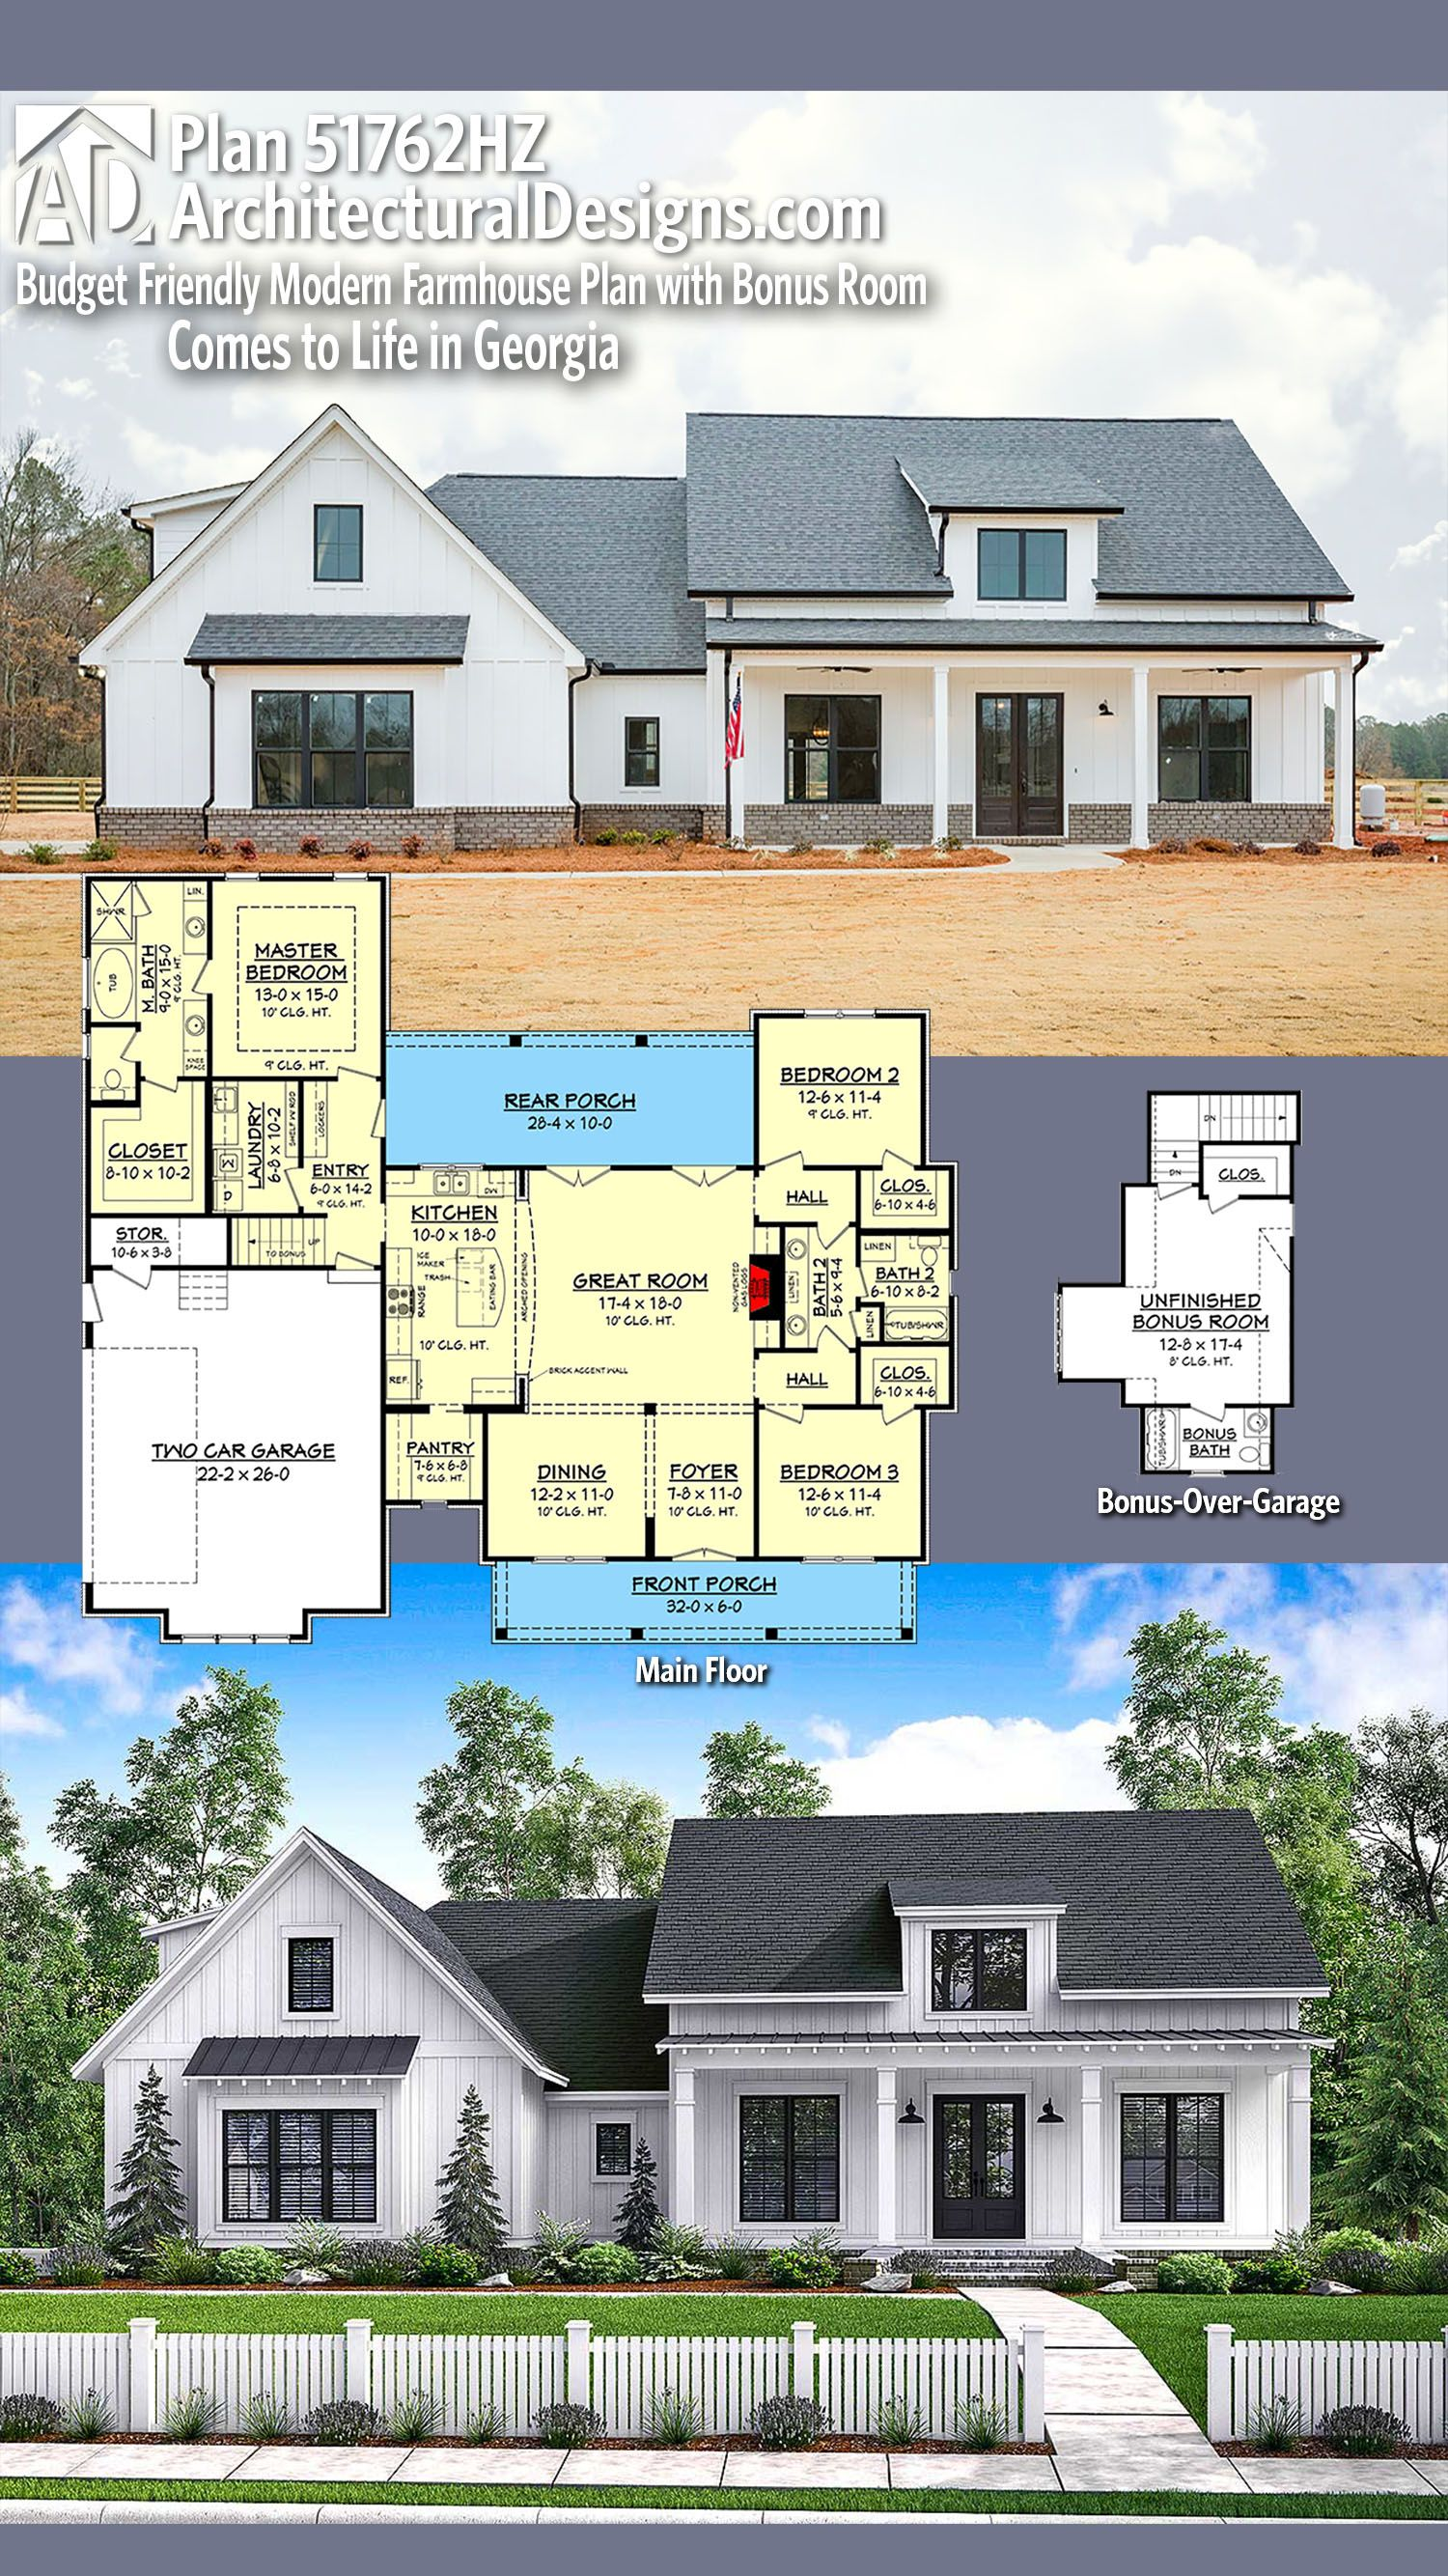 Georgian Farmhouse Design Plan 51762hz Budget Friendly Modern Farmhouse Plan With